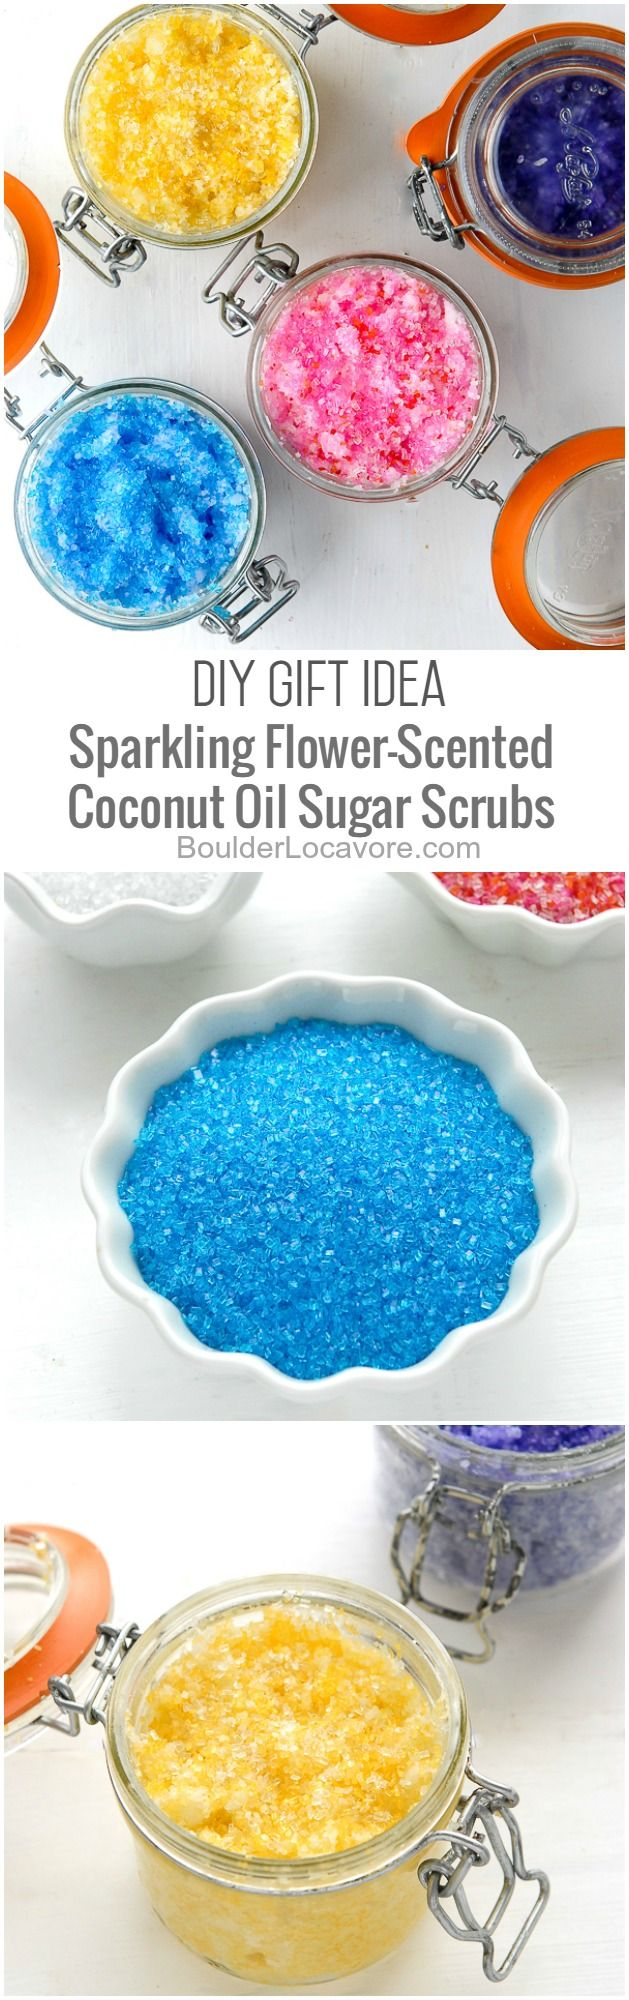 DIY Sparkling Flower-Scented Coconut Oil Sugar Scrubs are DIY gift ideas perfect for Valentine's or Mother's Day, or for any home spa day! Free printable labels too.